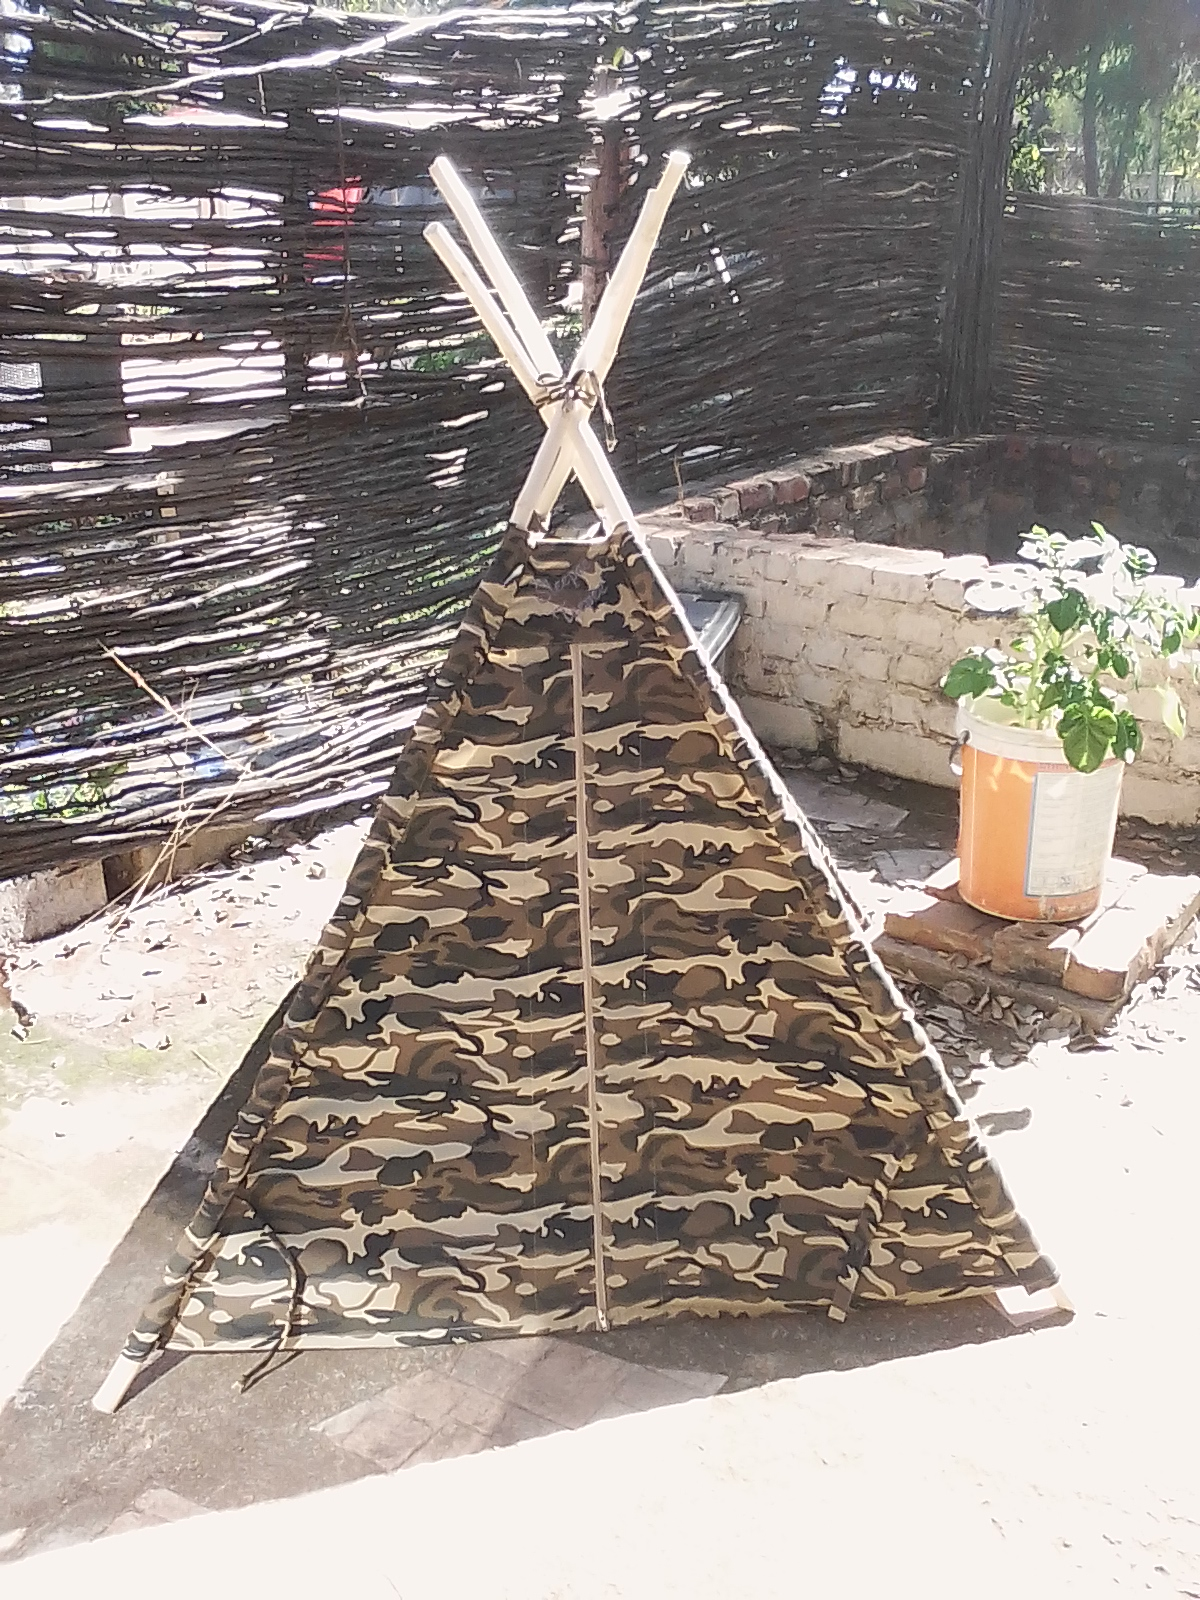 Sleepee Teepee's for babies and toddlers